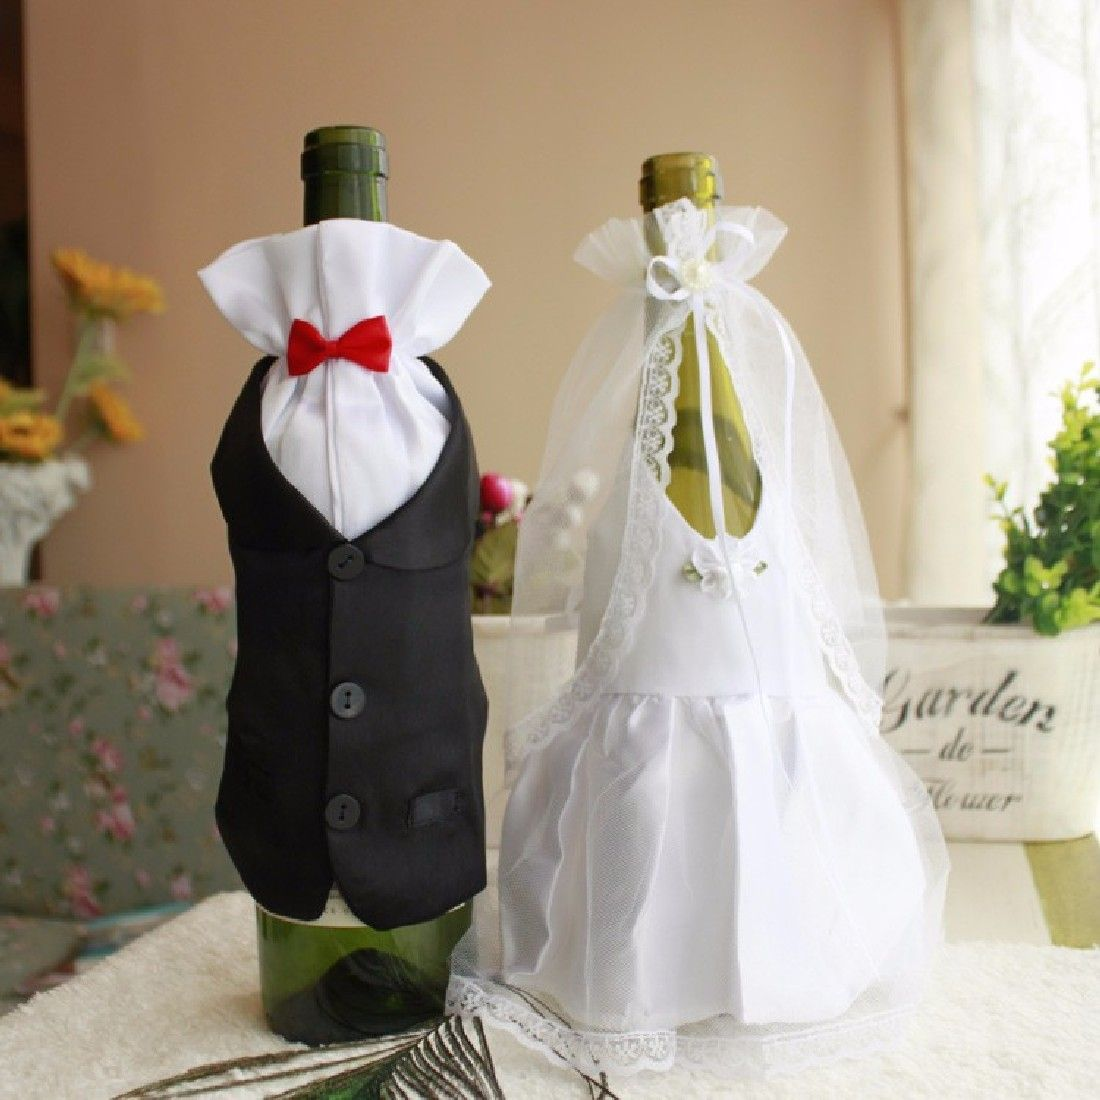 Glass Bottles For Wedding Decorations Bride And Groom Dress Wine Glass Champagne Bottle Wedding